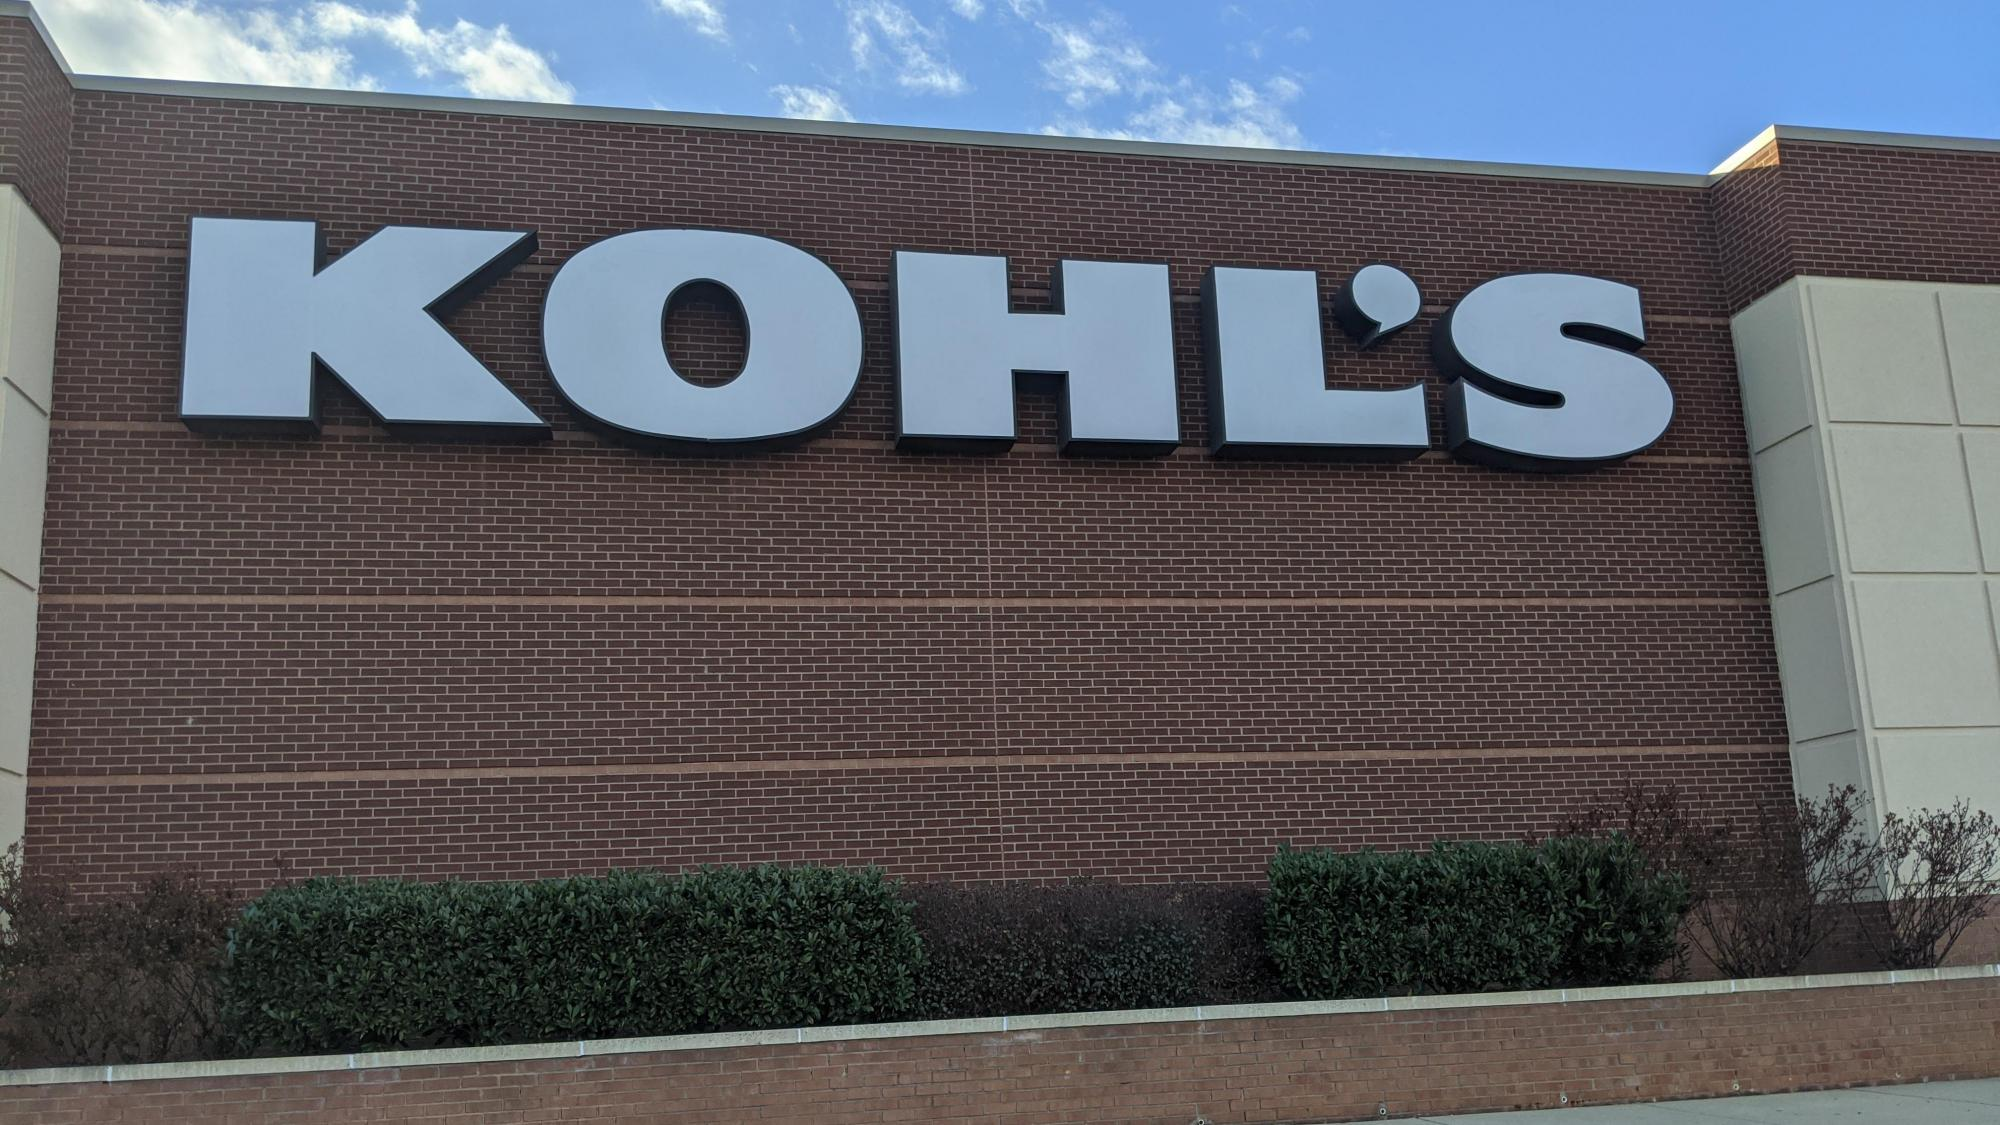 Kohl S New 20 Off Coupon Earn Kohl S Cash Clothing Sales Wral Com